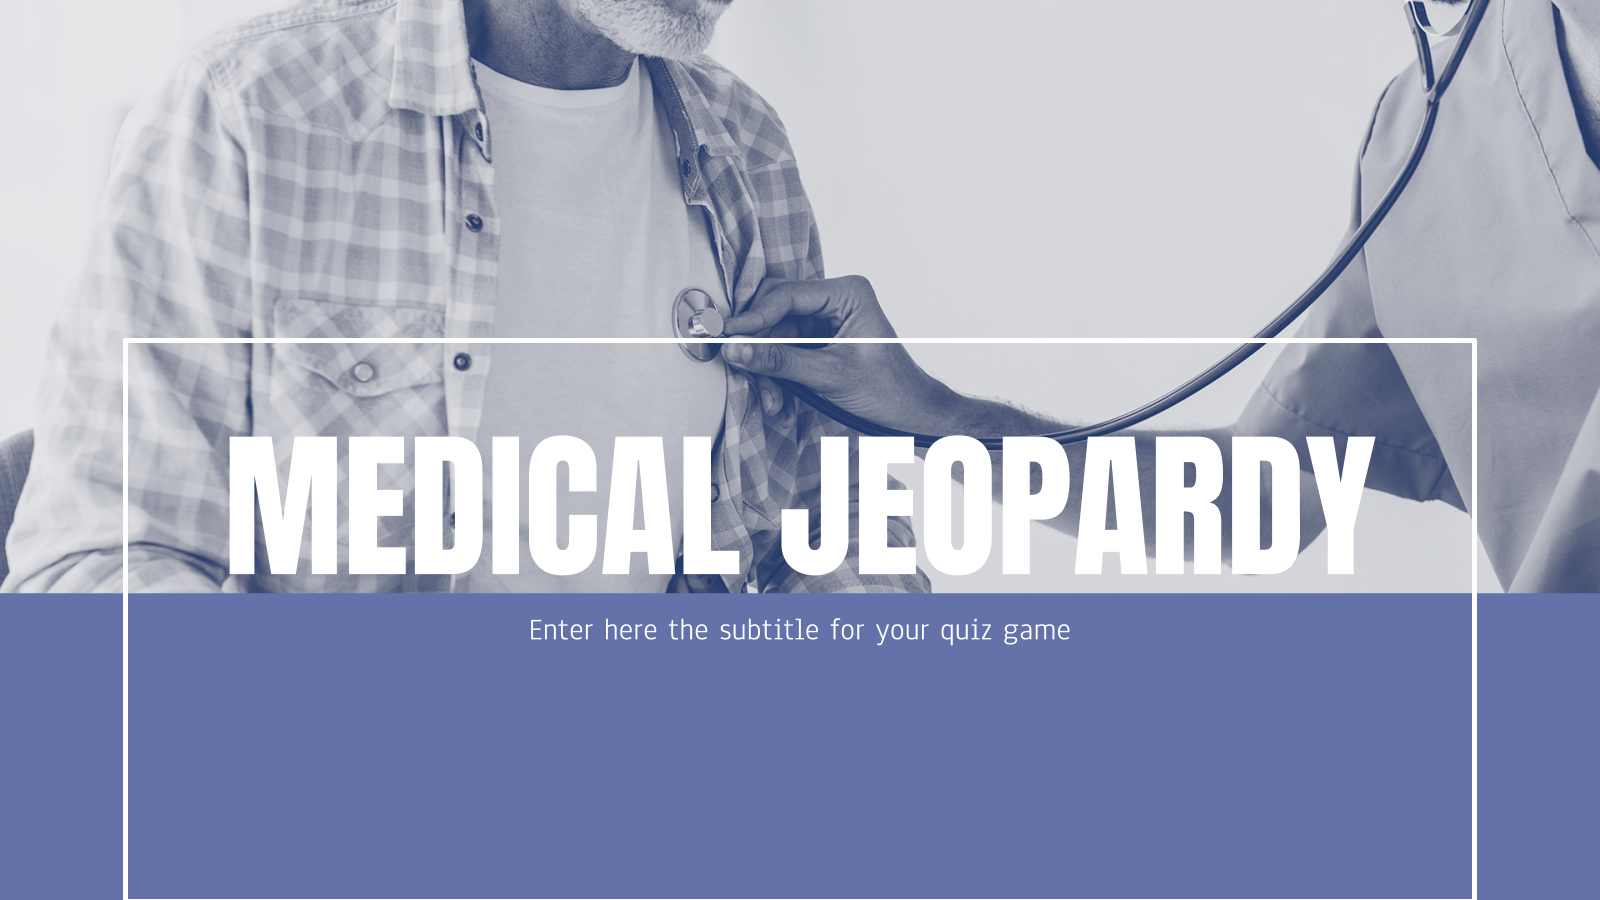 Medical Jeopardy presentation template